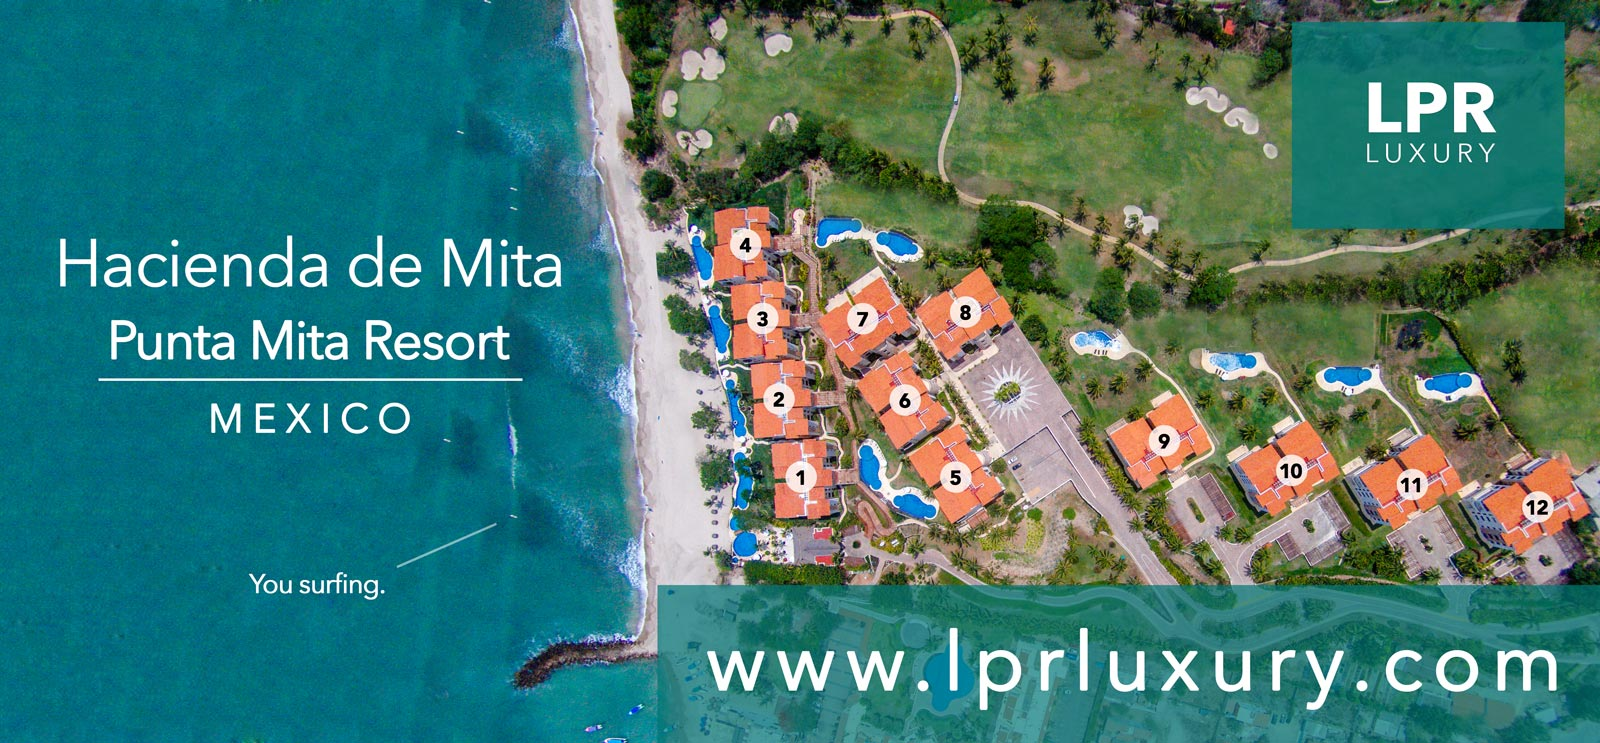 Hacienda De Mita 5 2 Penthouse Punta Mita Vacation Rental